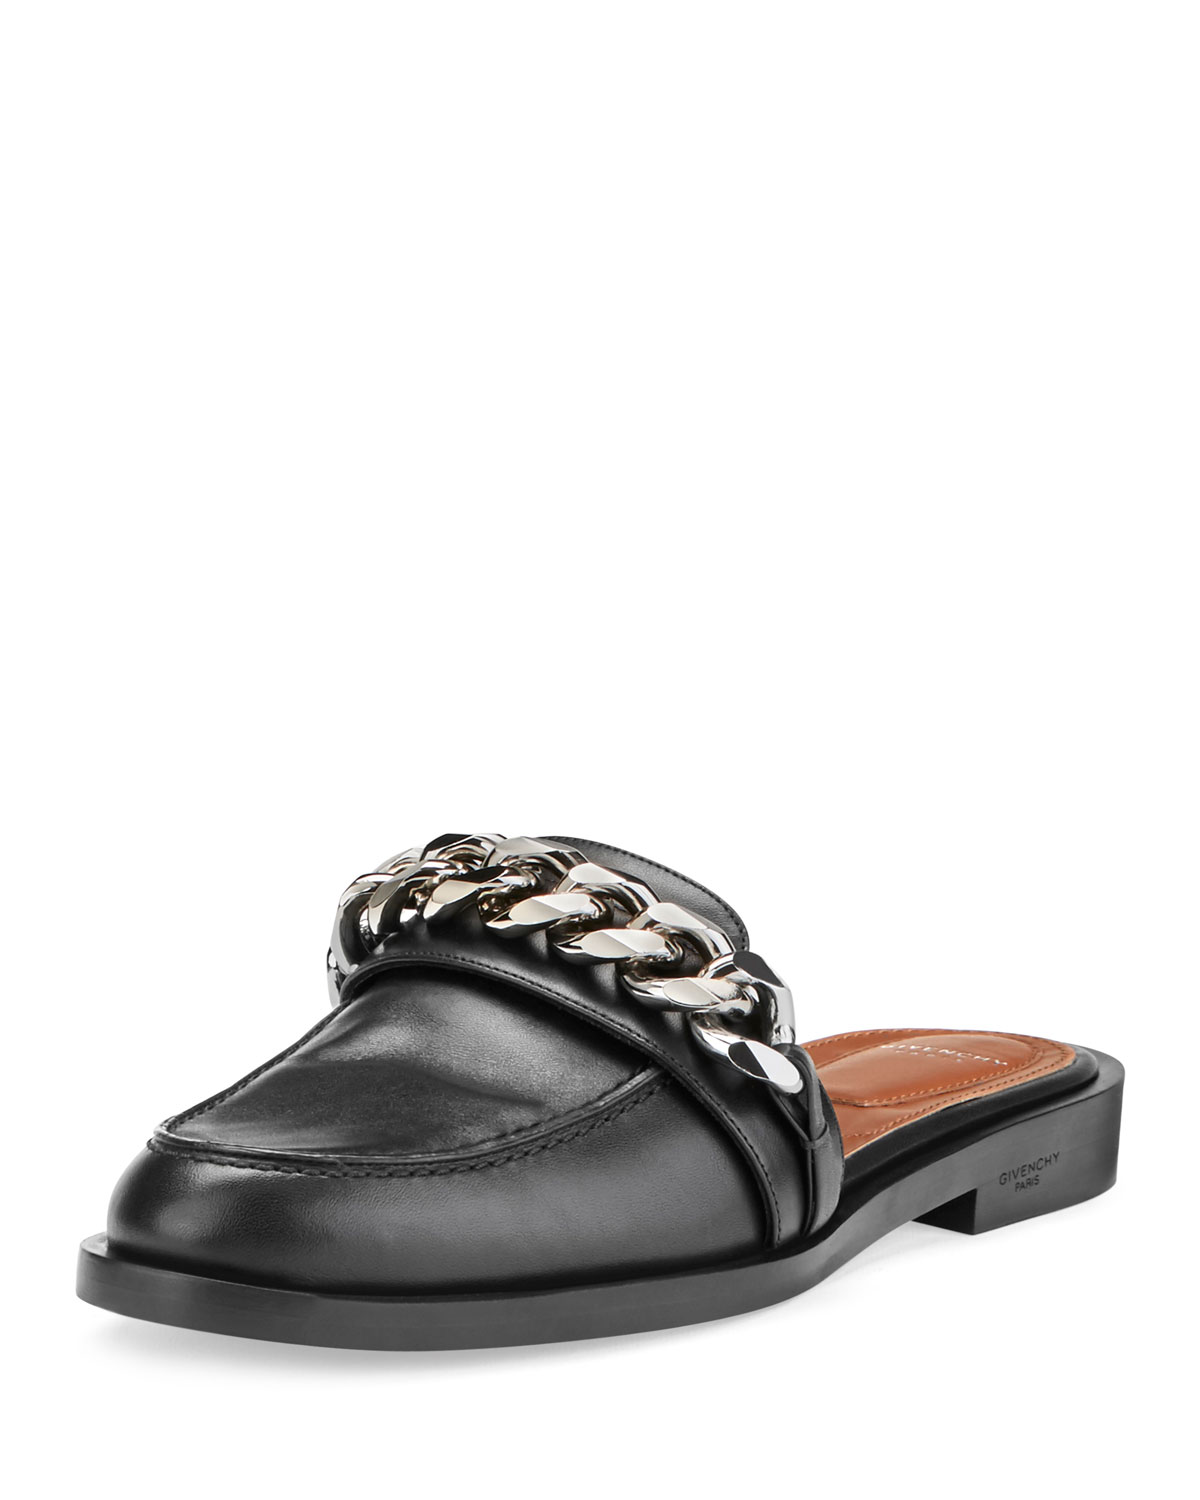 8ee4739477a Givenchy Chain Leather Loafer Mule